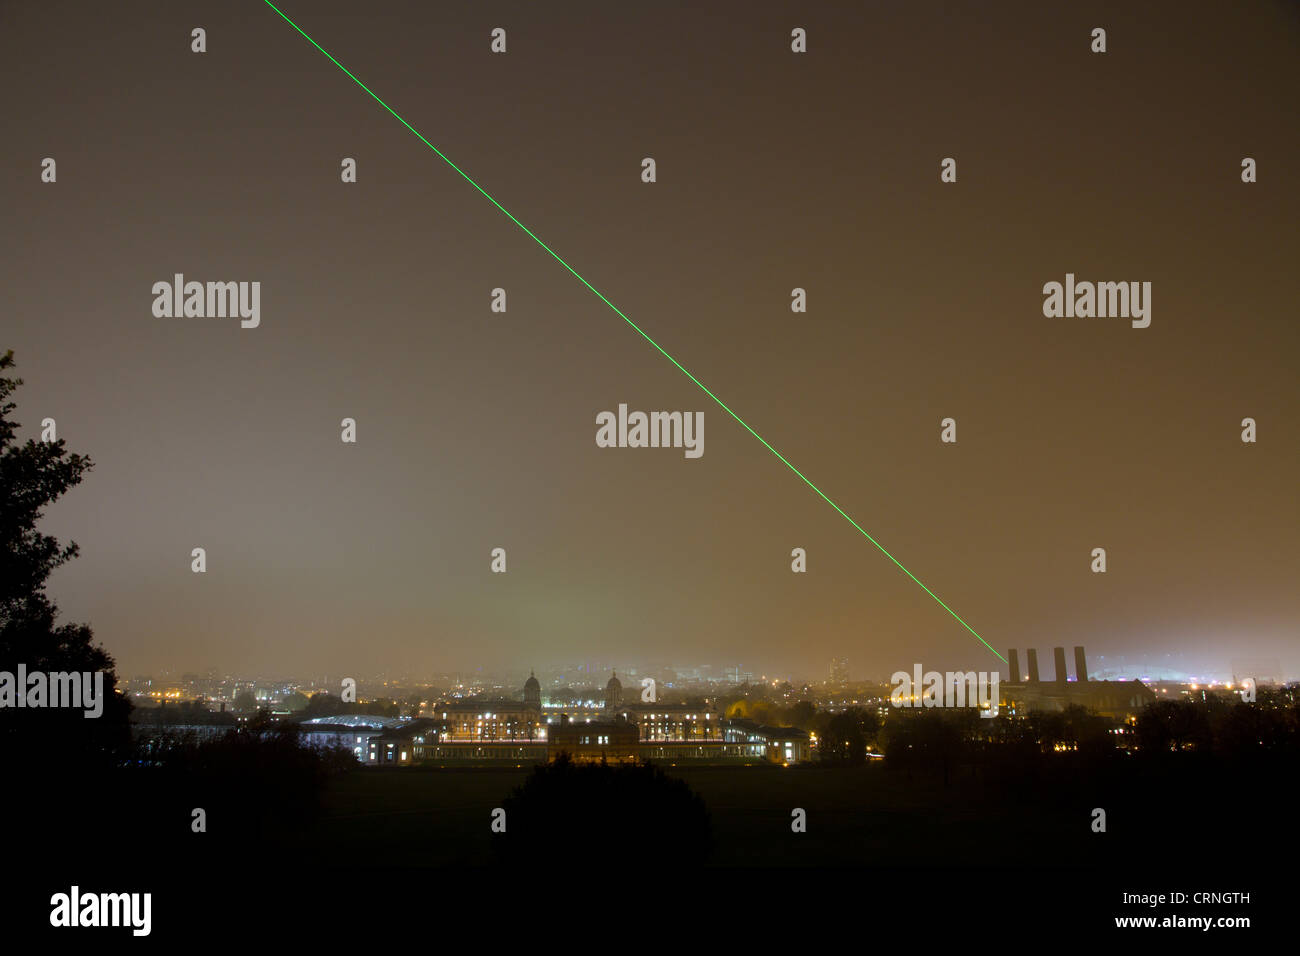 Laser being projected from the Royal Observatory at Greenwich across the London skyline marking the Prime Meridian - Stock Image